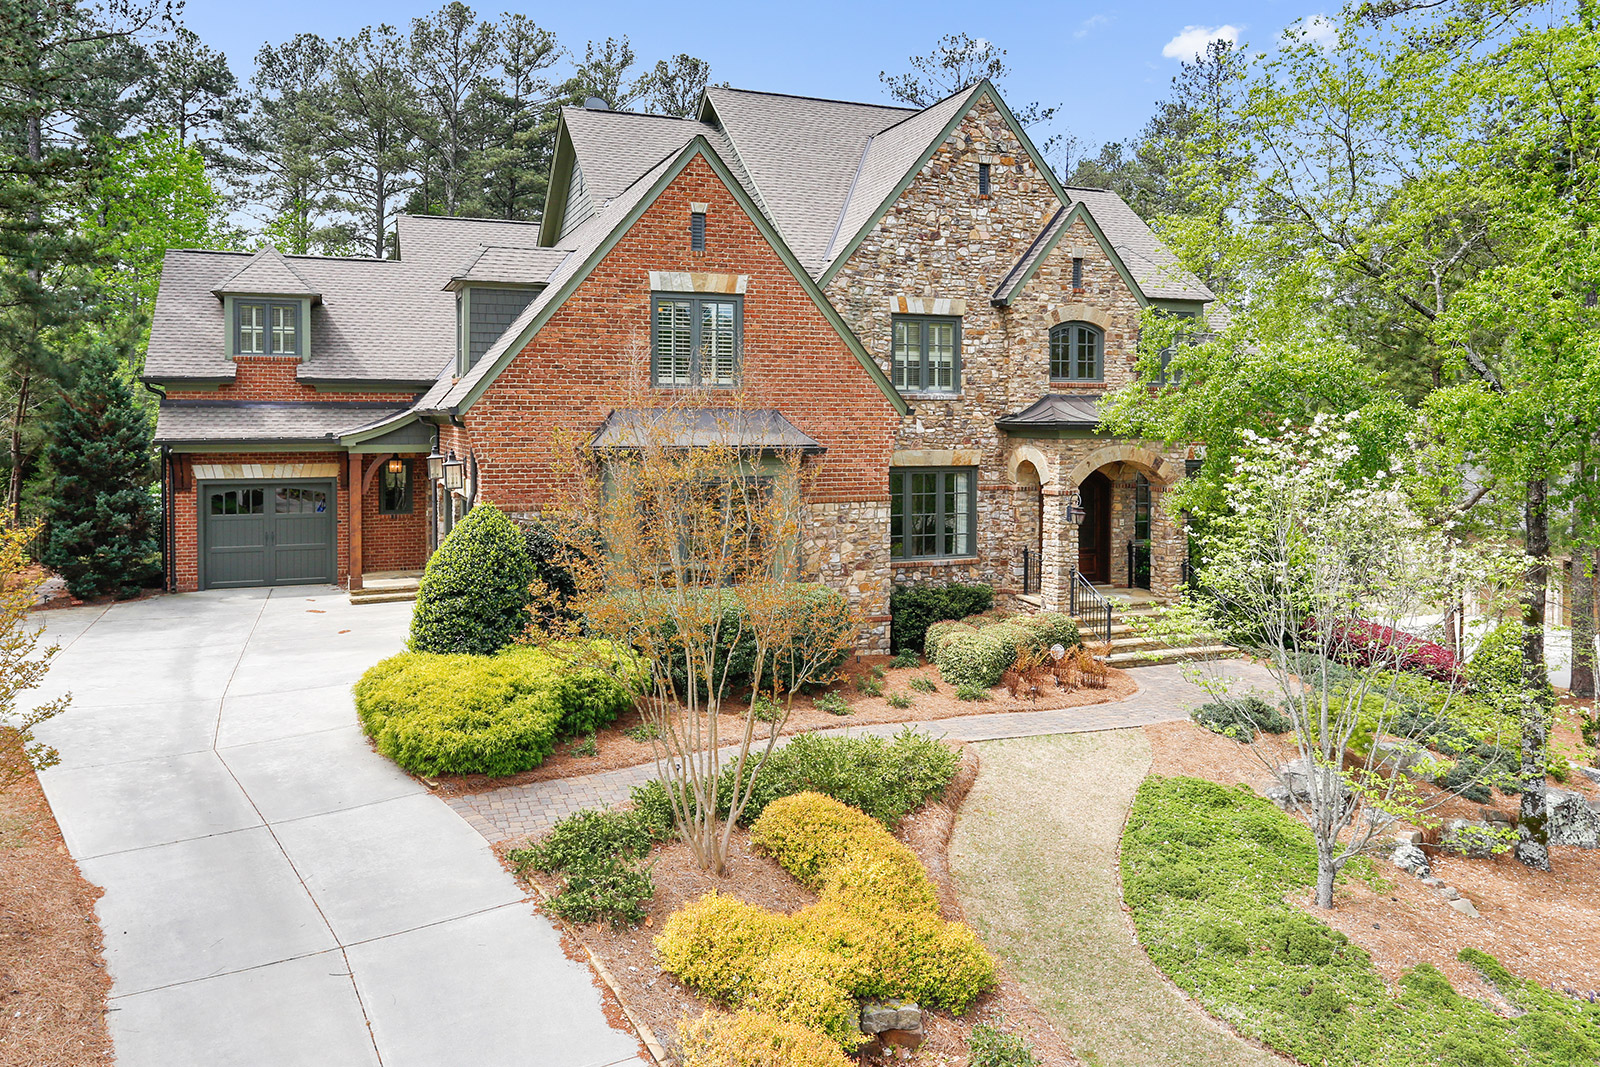 Casa Unifamiliar por un Venta en Gorgeous Pool Awaits You 972 Little Darby Lane Suwanee, Georgia, 30024 Estados Unidos